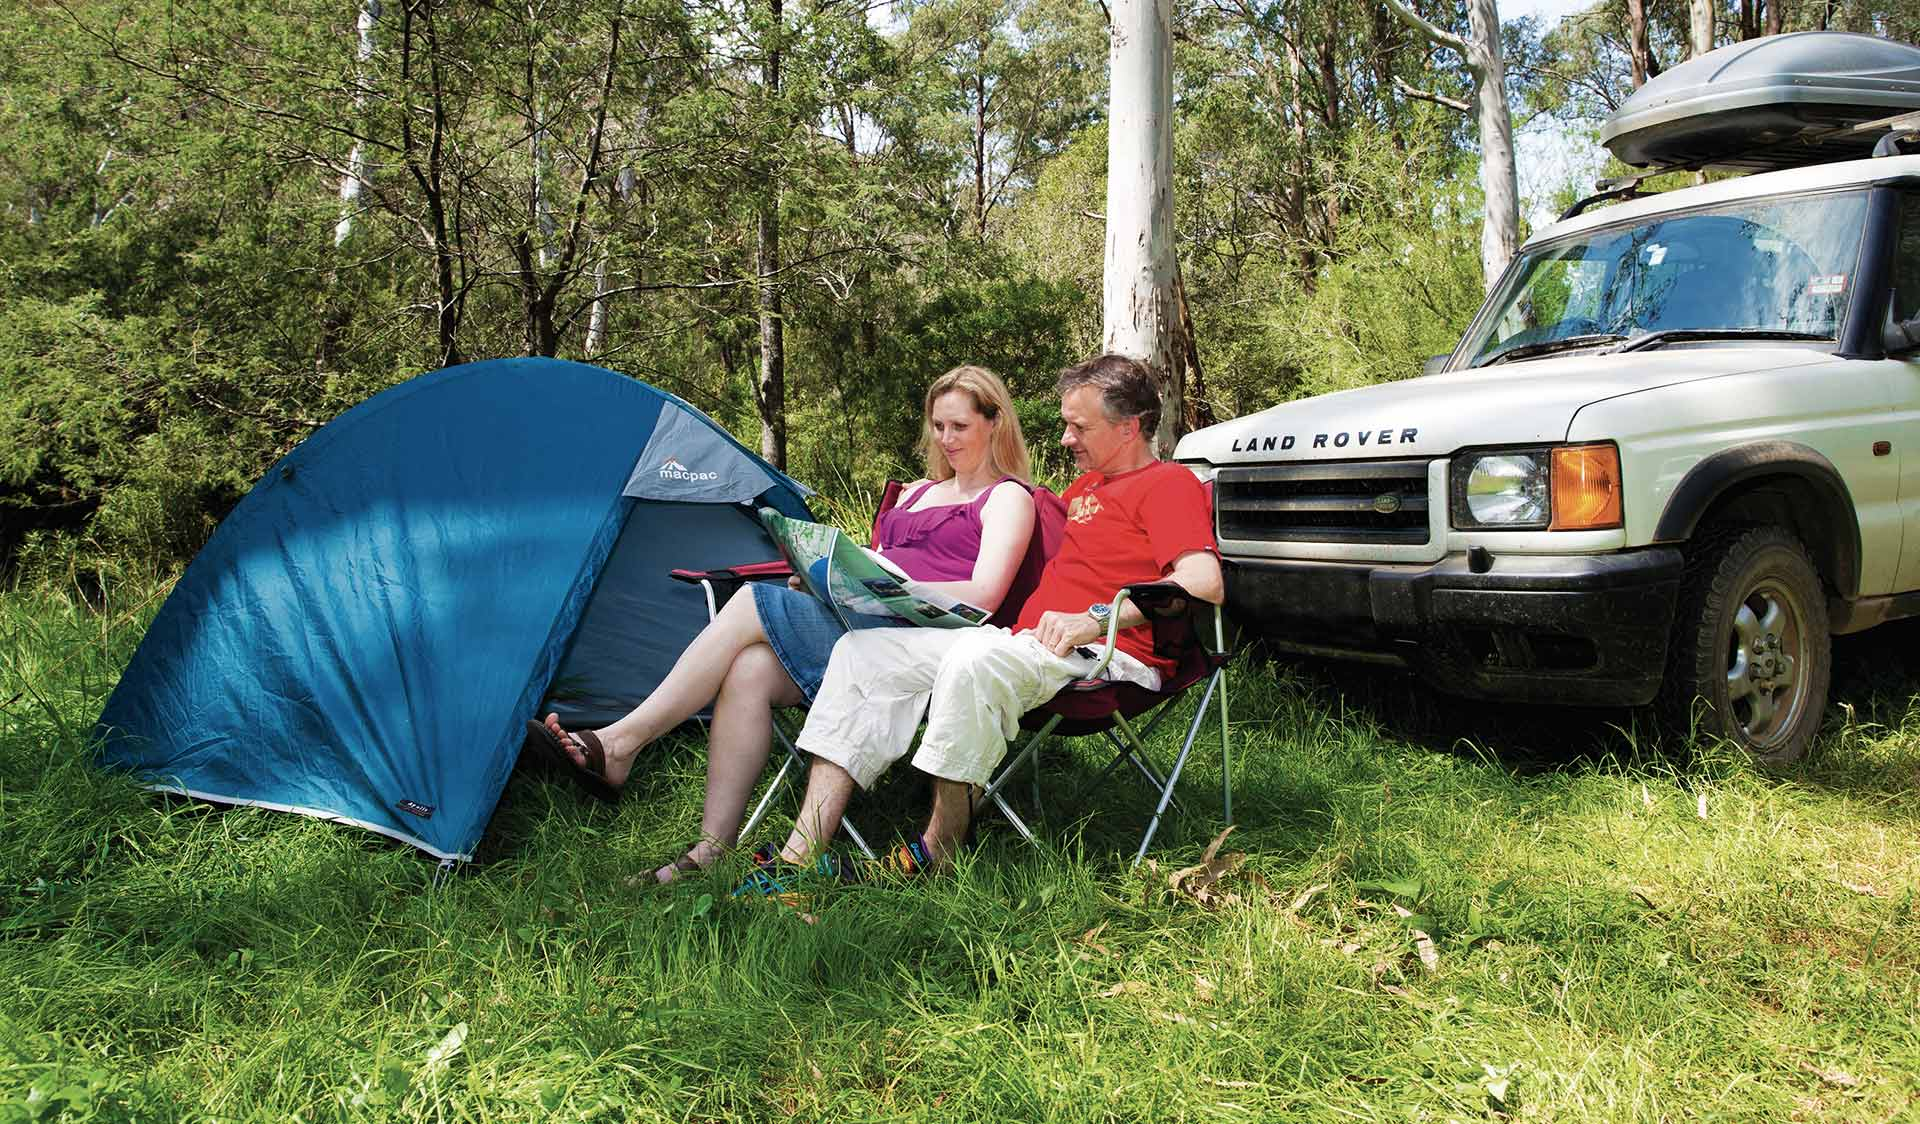 A couple sit and look at a map next to their tent and car.